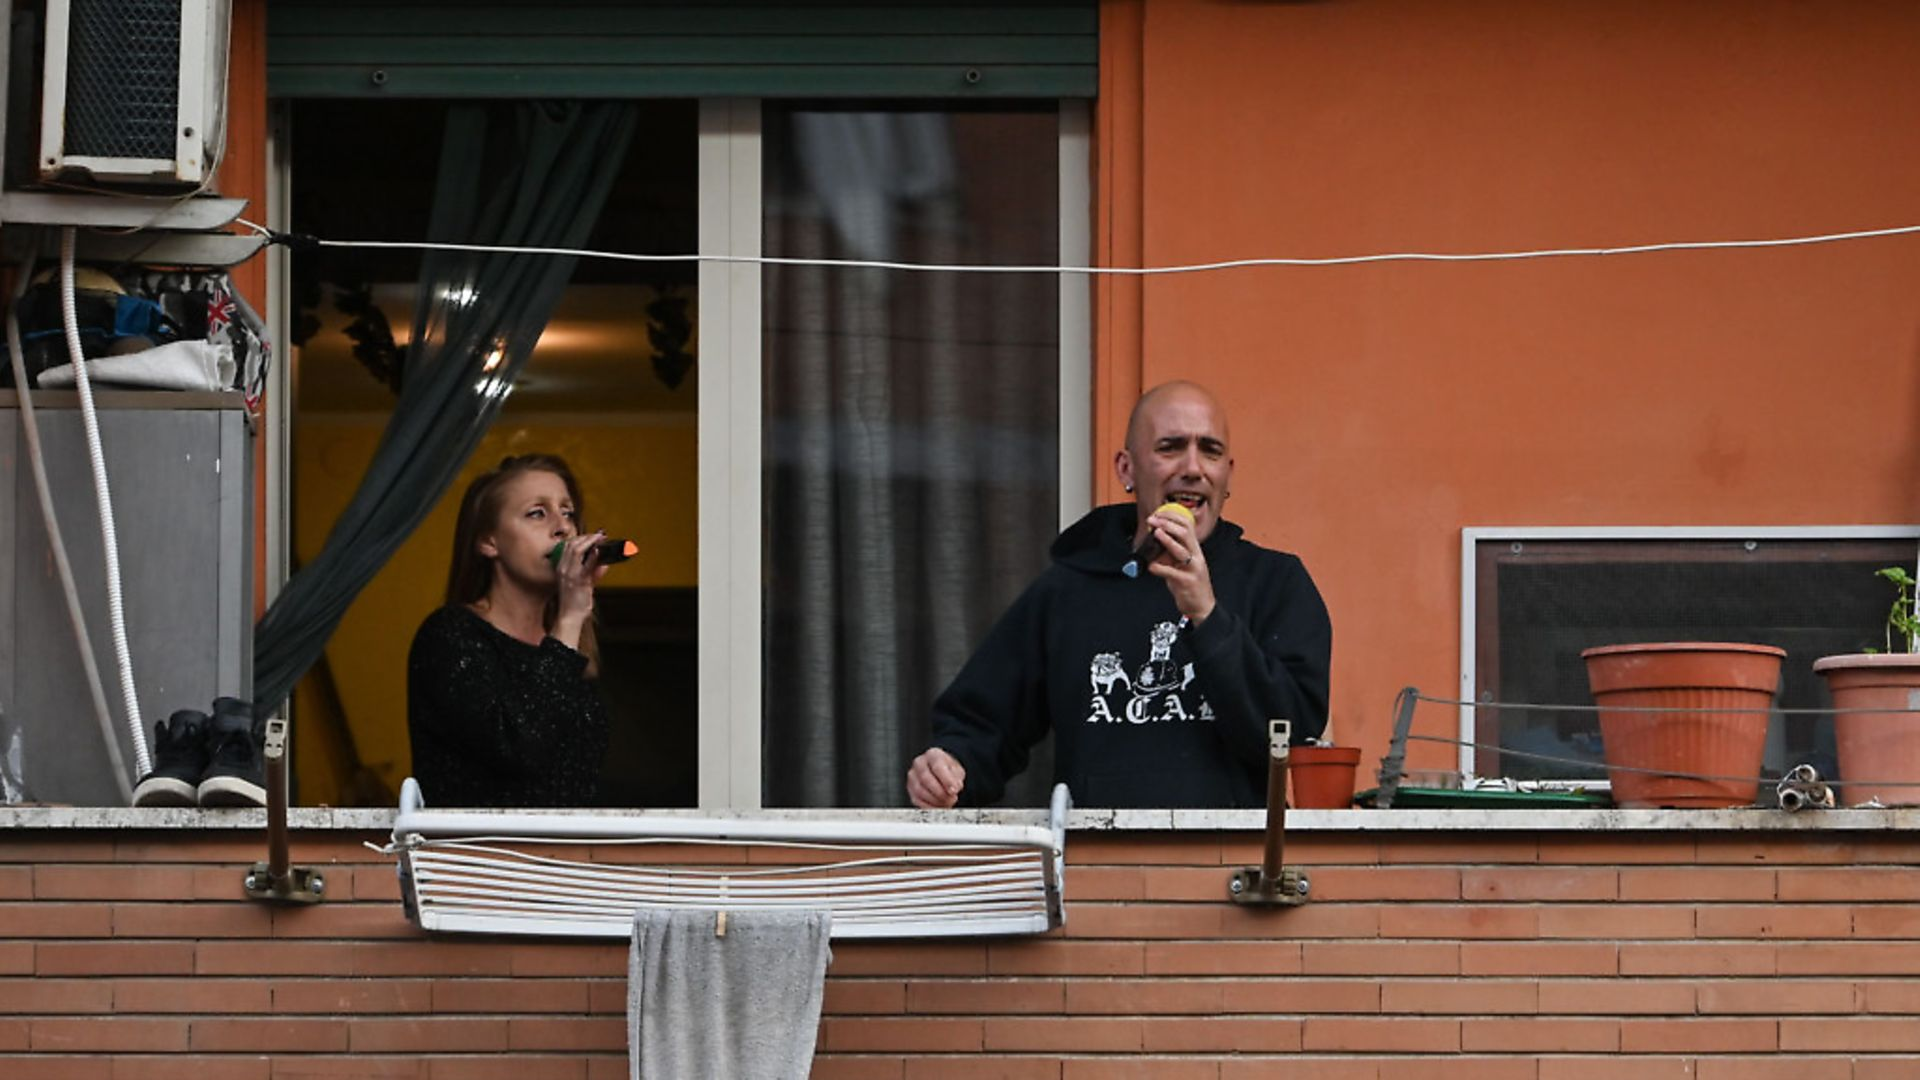 """Italians join the flash mob call to perform """"Una canzone per l'Italia"""" in the Magliana district of Rome, March 15. Picture: Getty Images - Credit: AFP via Getty Images"""